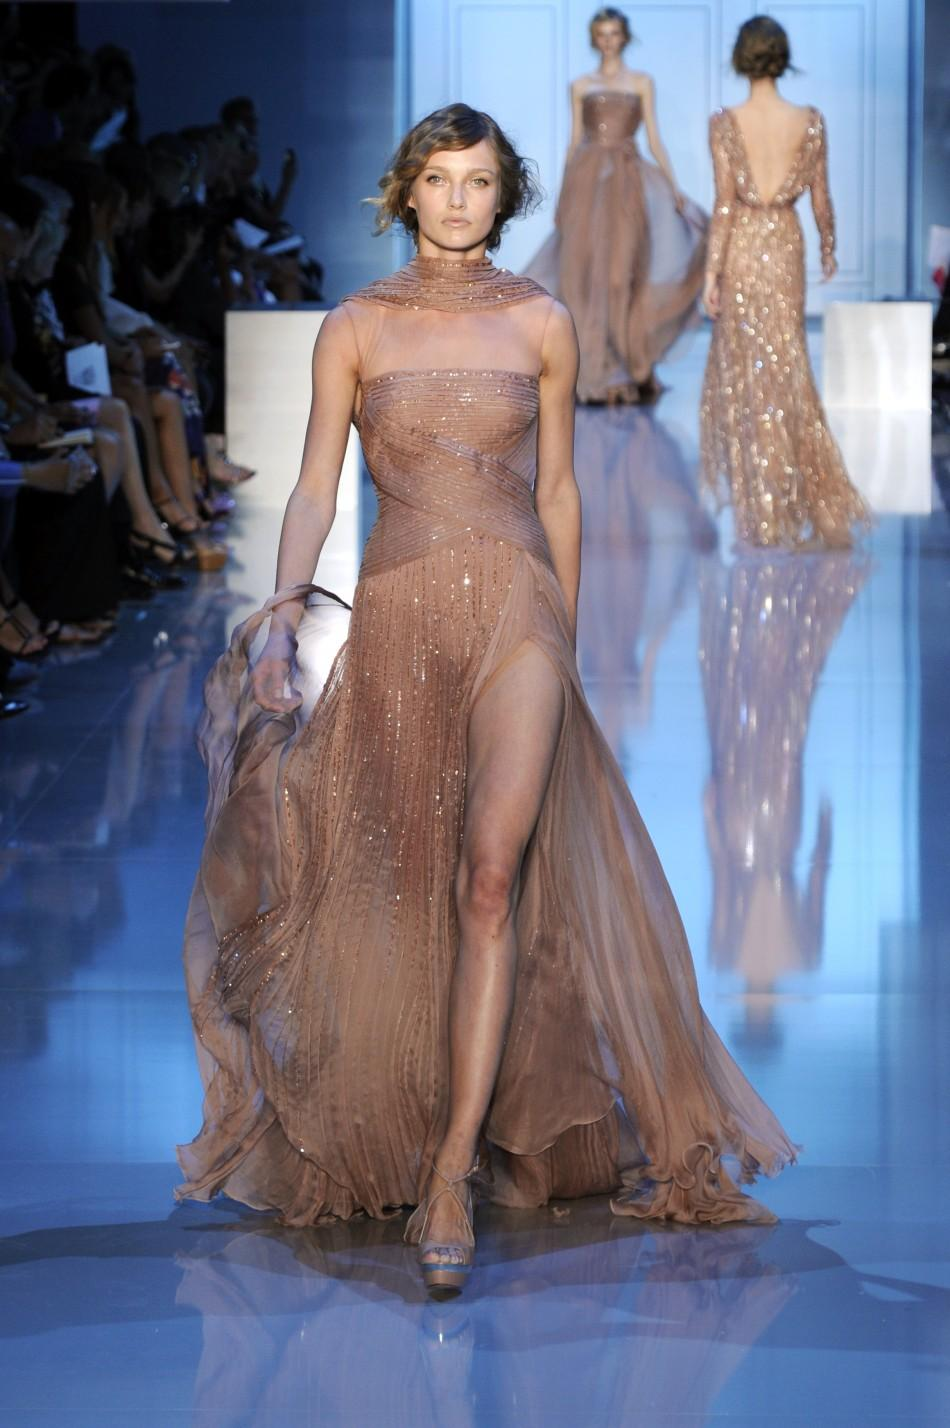 A creation by Lebanese designer Elie Saab